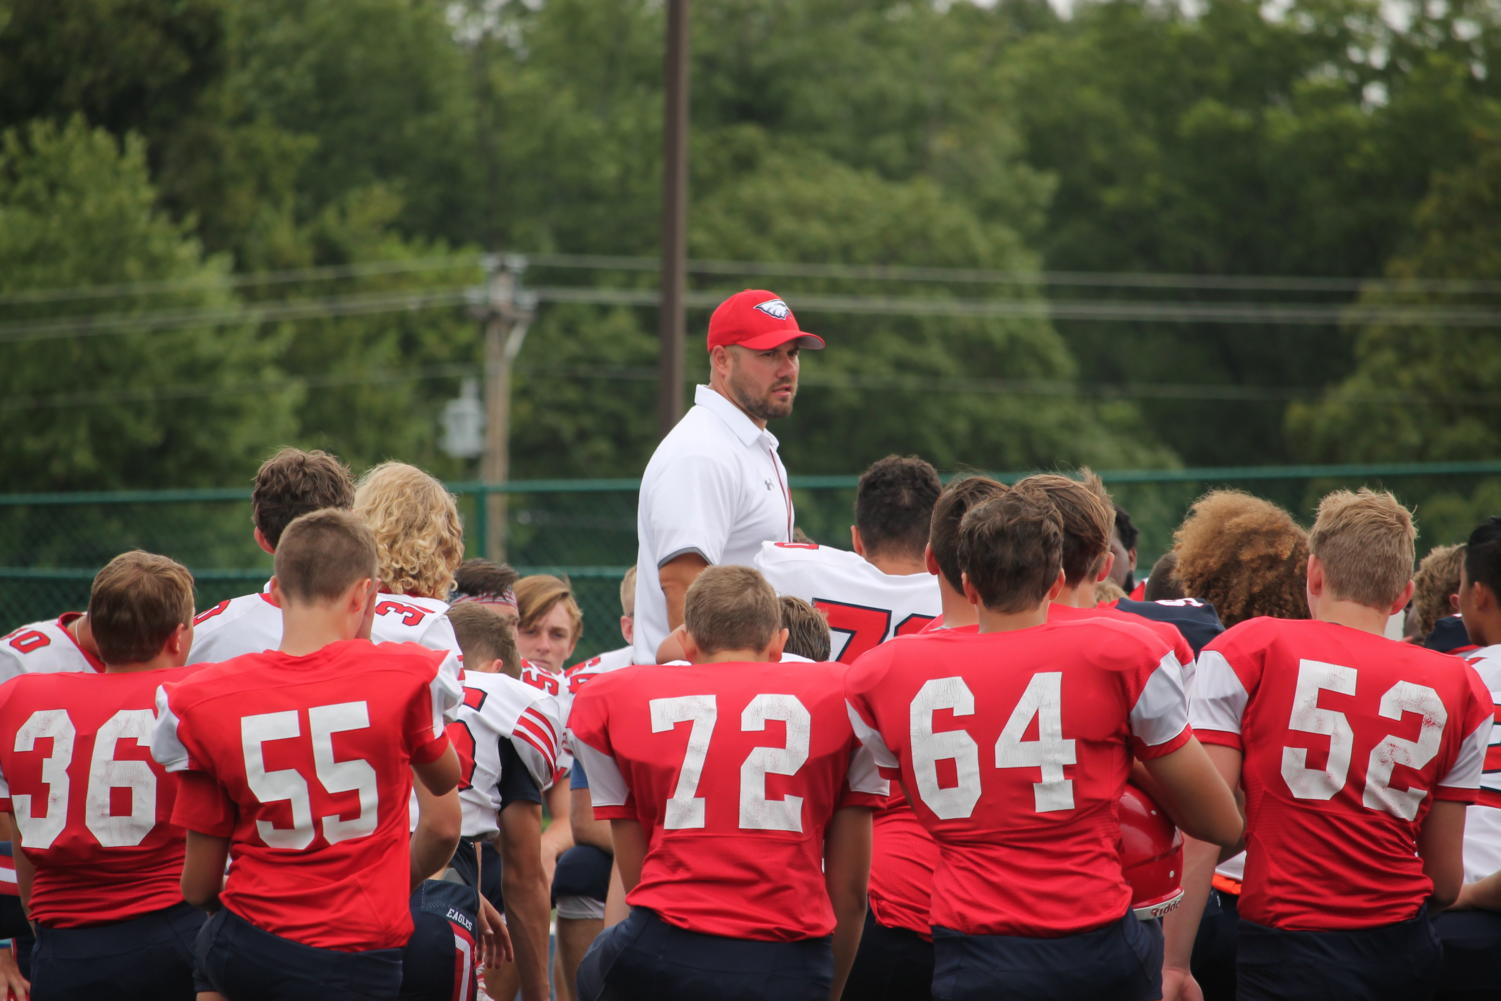 Coach+McMillen+talks+with+his+players+at+the+fall+kickoff.+